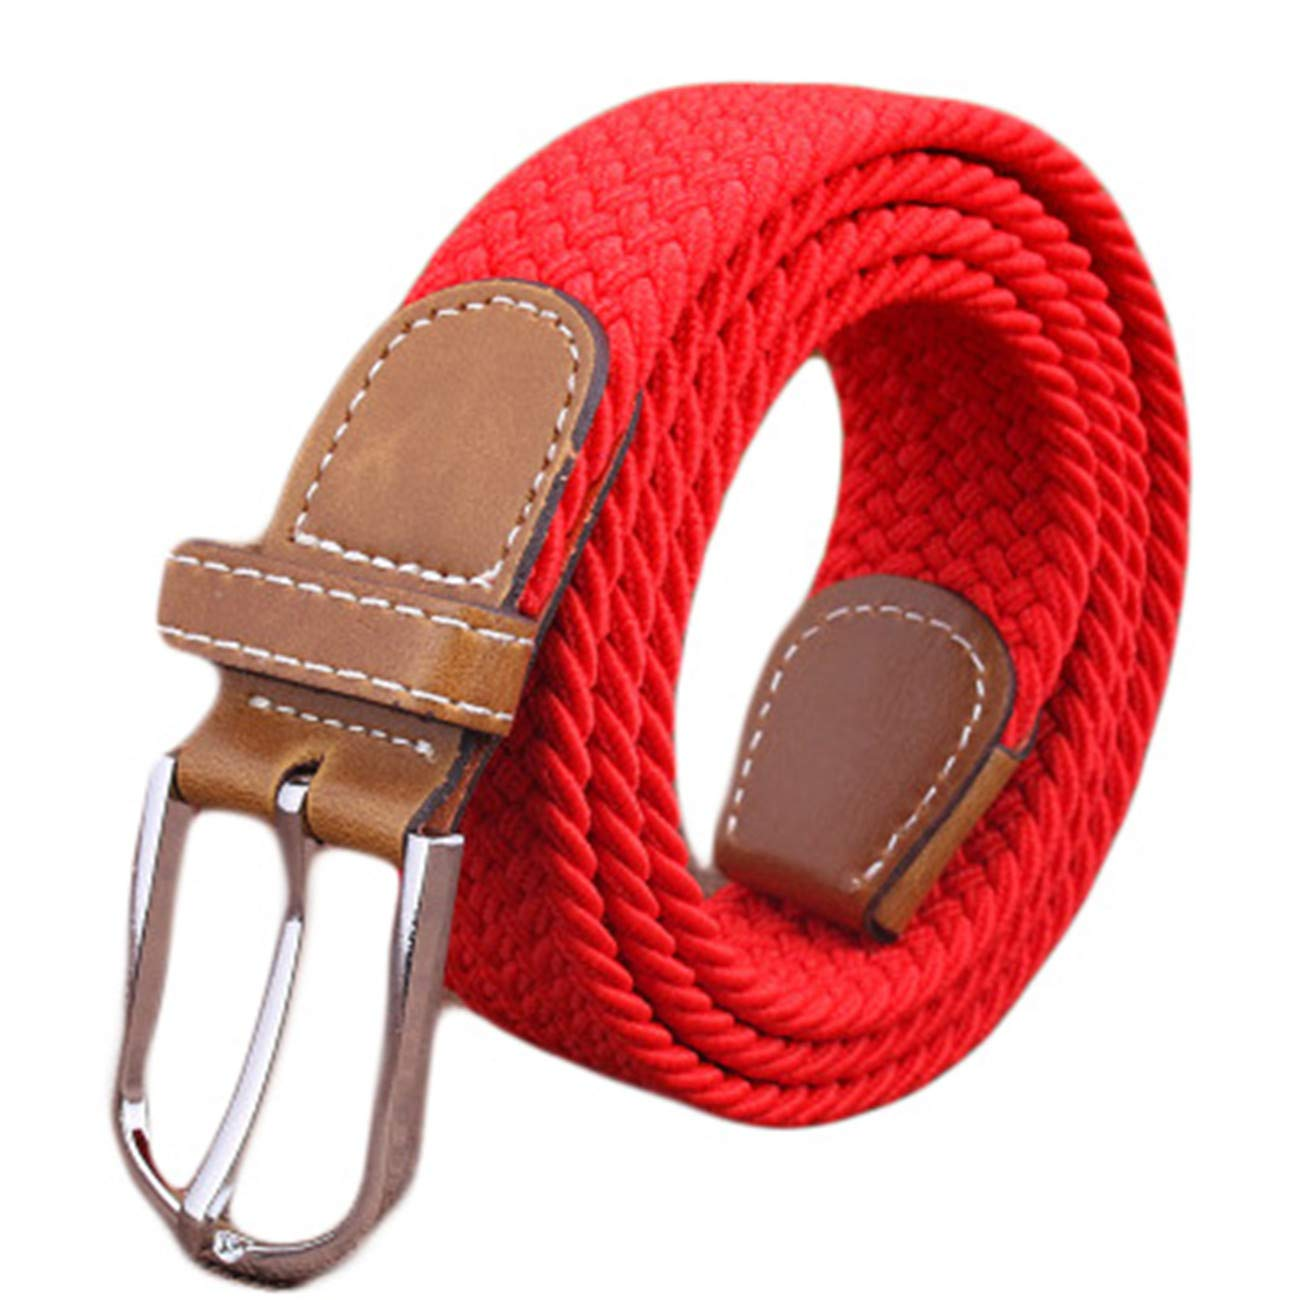 Andongnywell Men Braided Canvas Stretch Belt Casual Woven Elastic Belts with Pin Buckle for Women//Junior